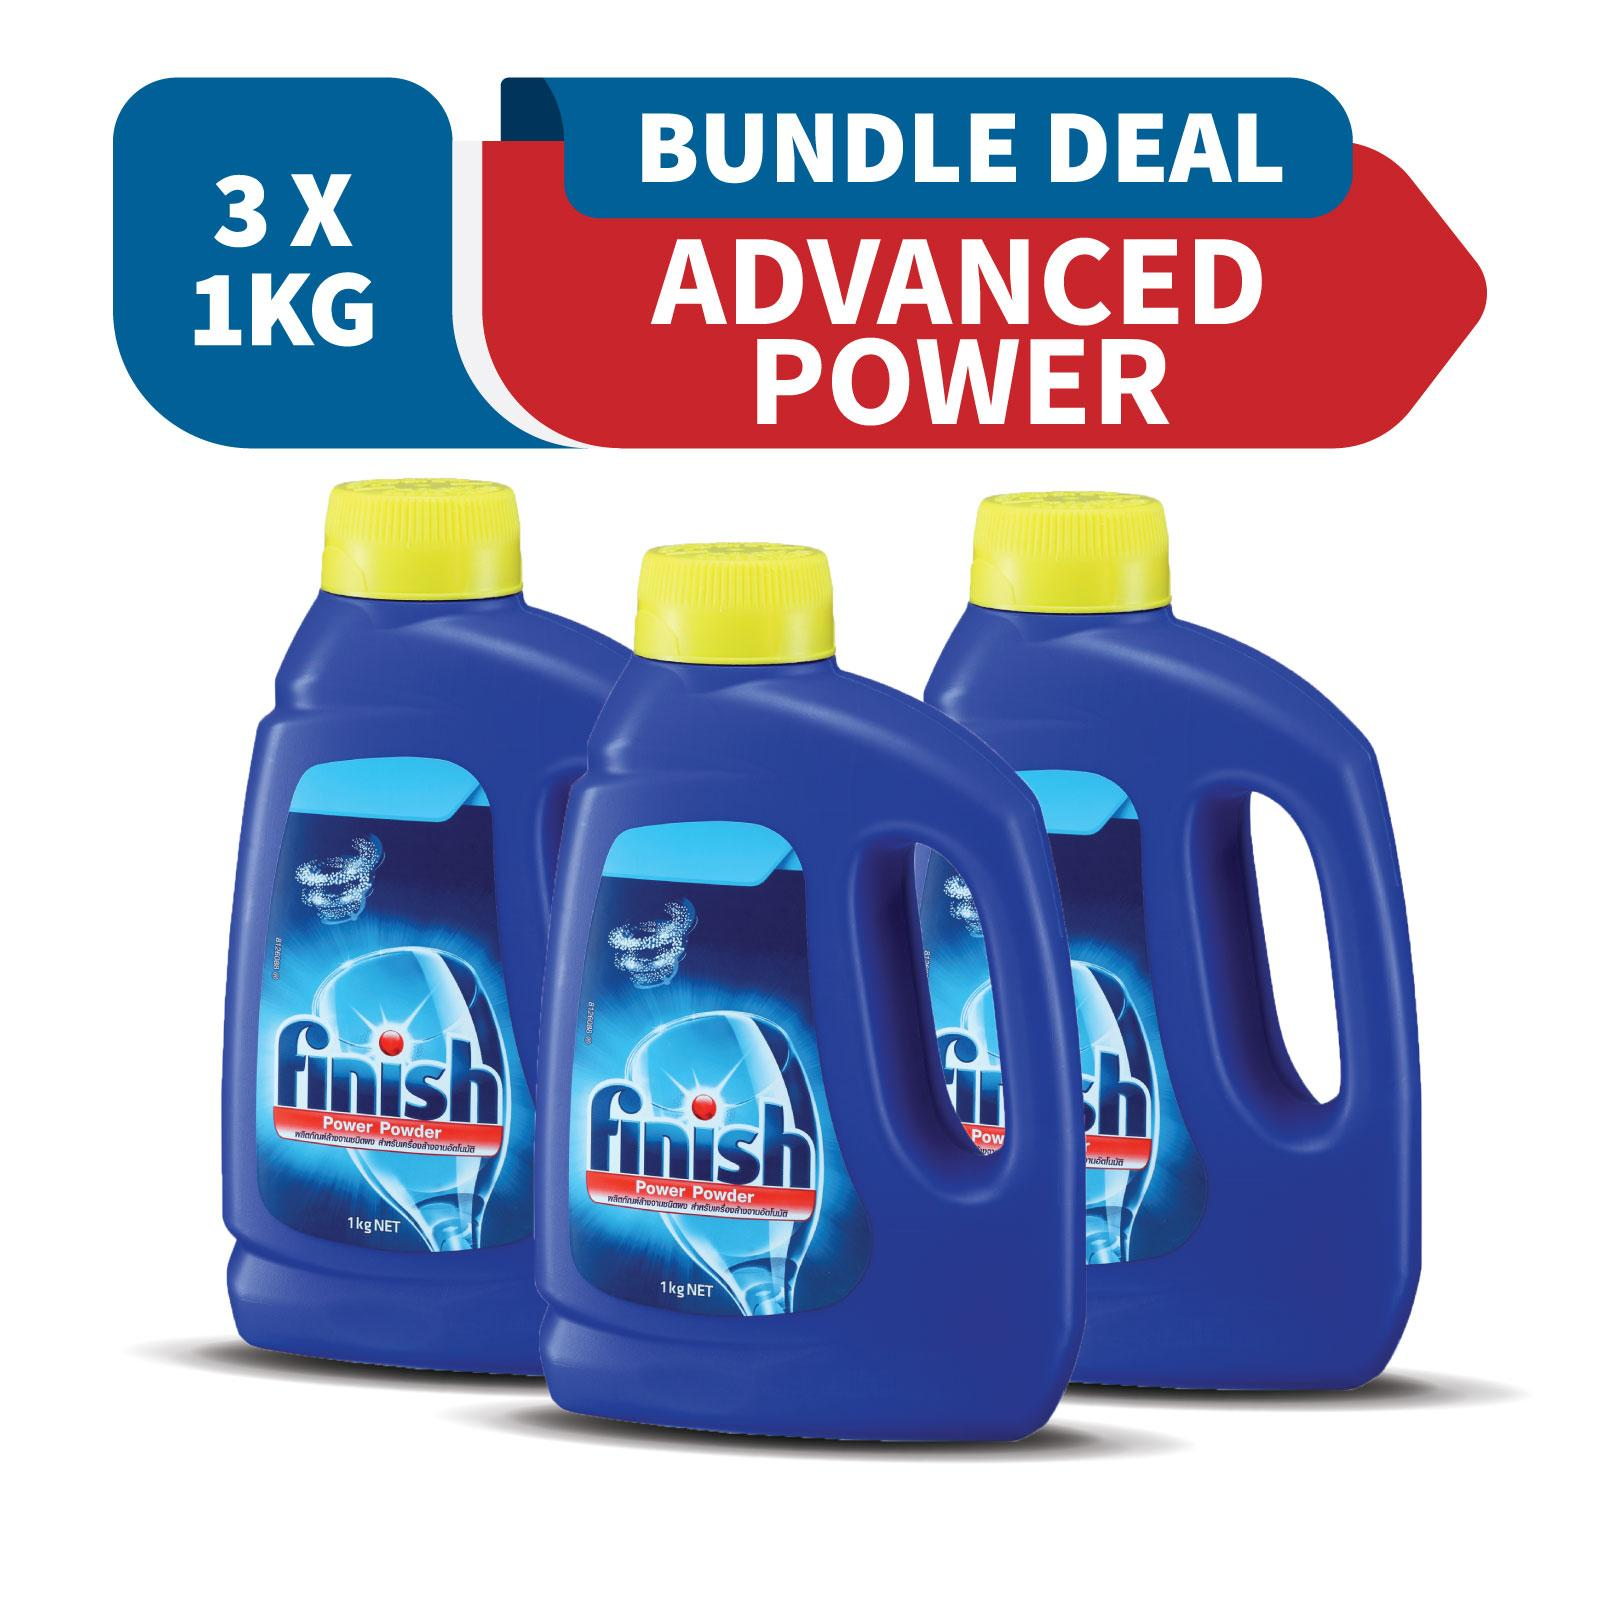 Finish Advanced Power Powder Detergent Dishwashing Cleaner 1kg X 3 By Rb Home.